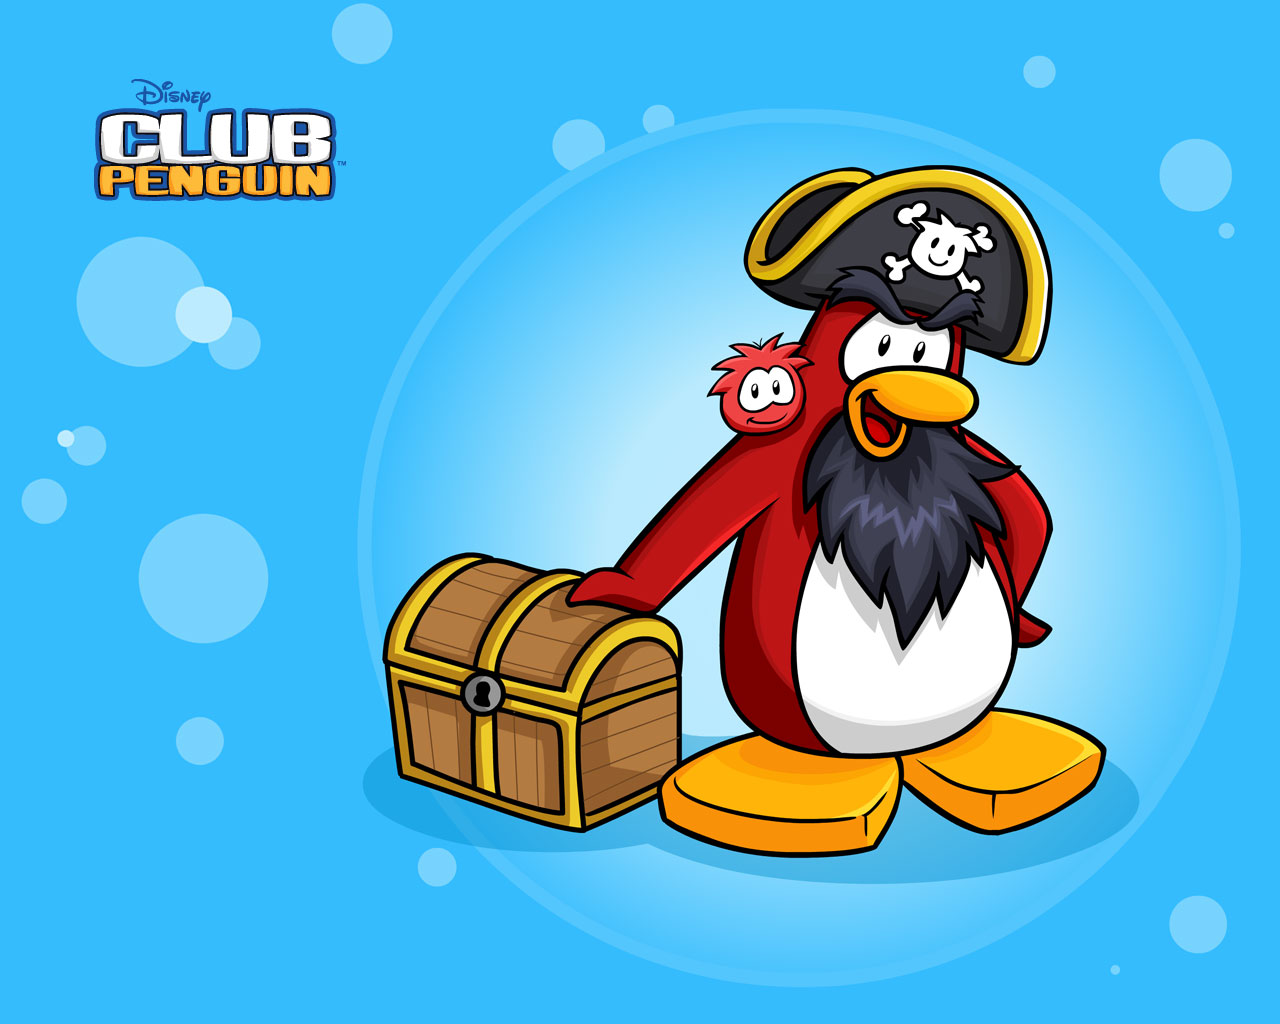 H Club Penguin Club Penguin Wa...